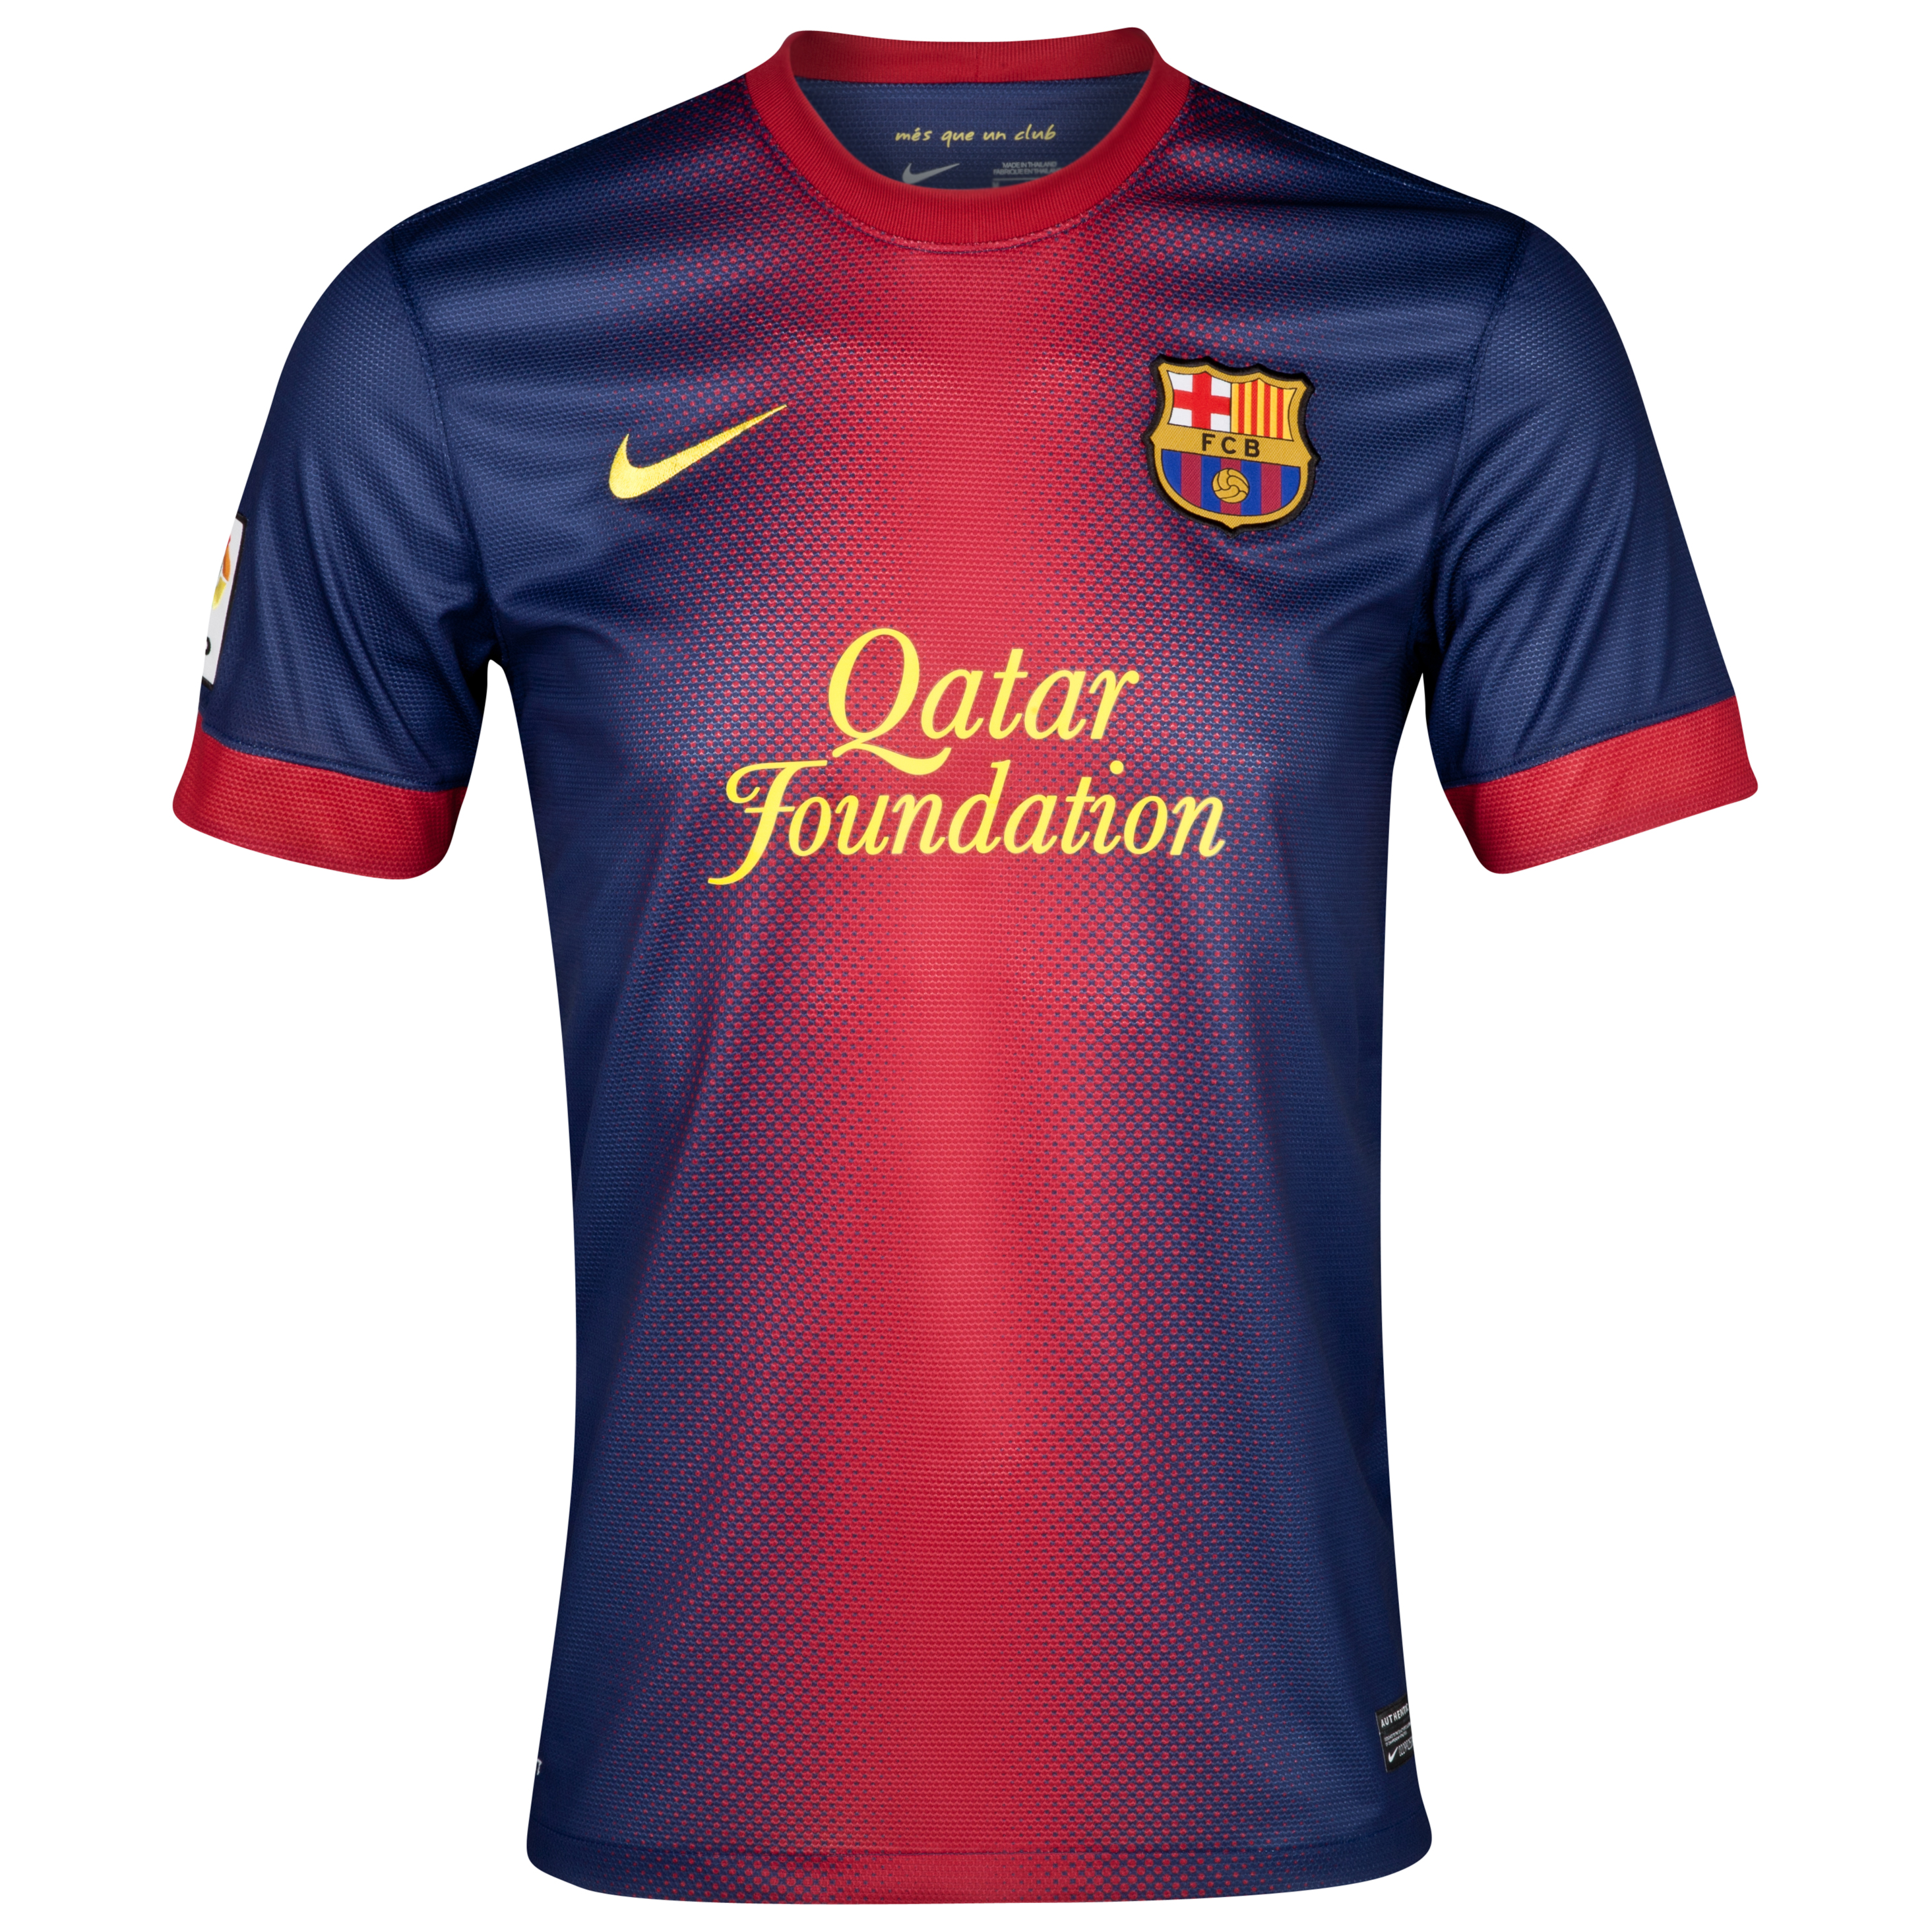 Barcelona Home Shirt 2012/13 Youths